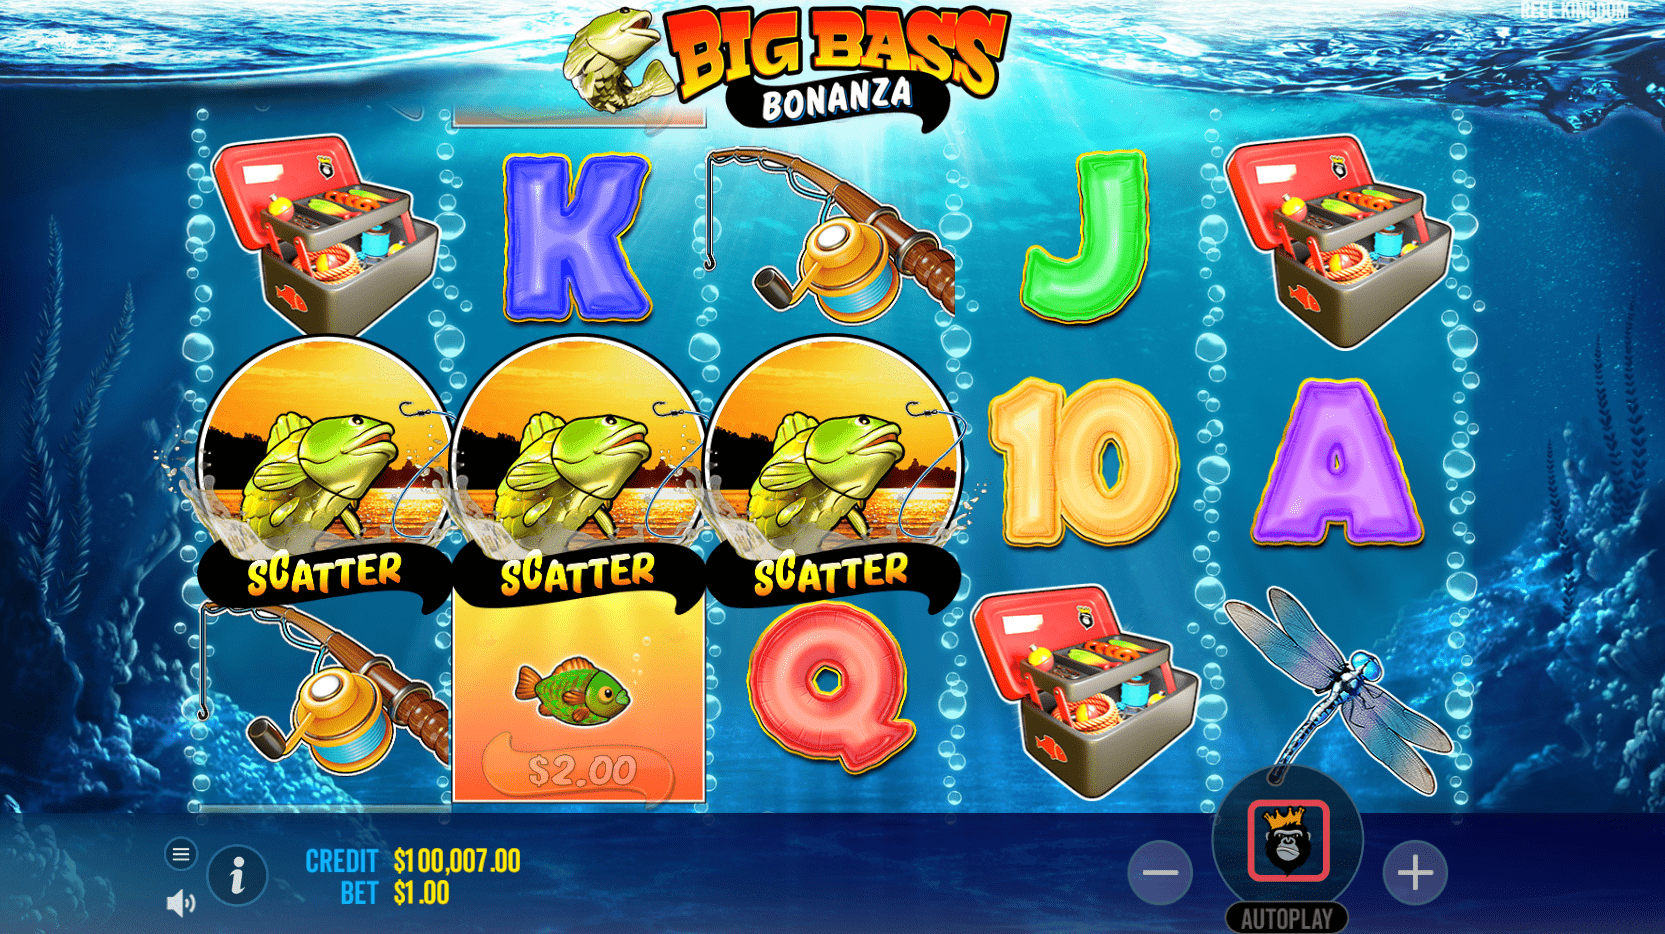 Big Bass Bonanza Video Slot Scatter Trigger